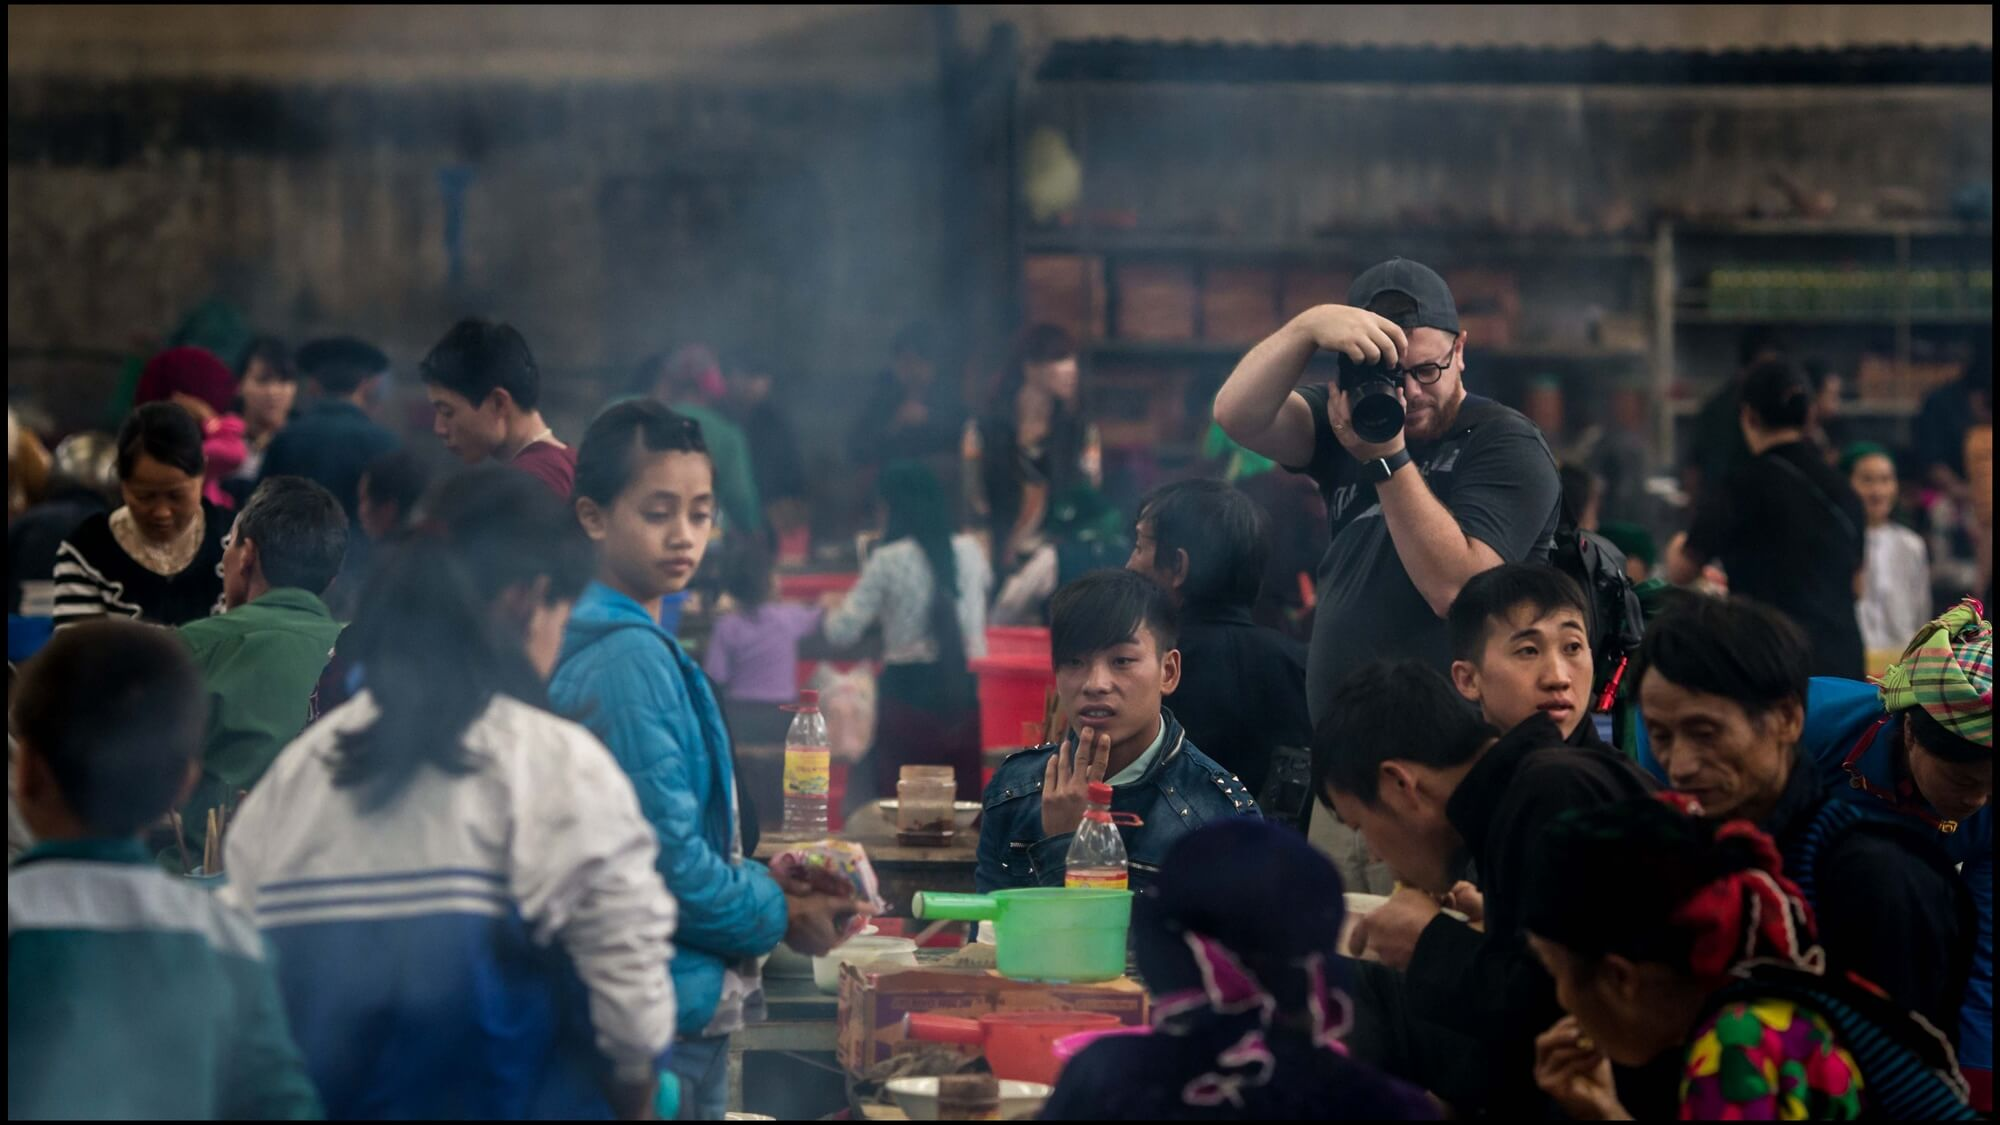 Photographer capturing busy restaurant activity in North Vietnam mountainous region